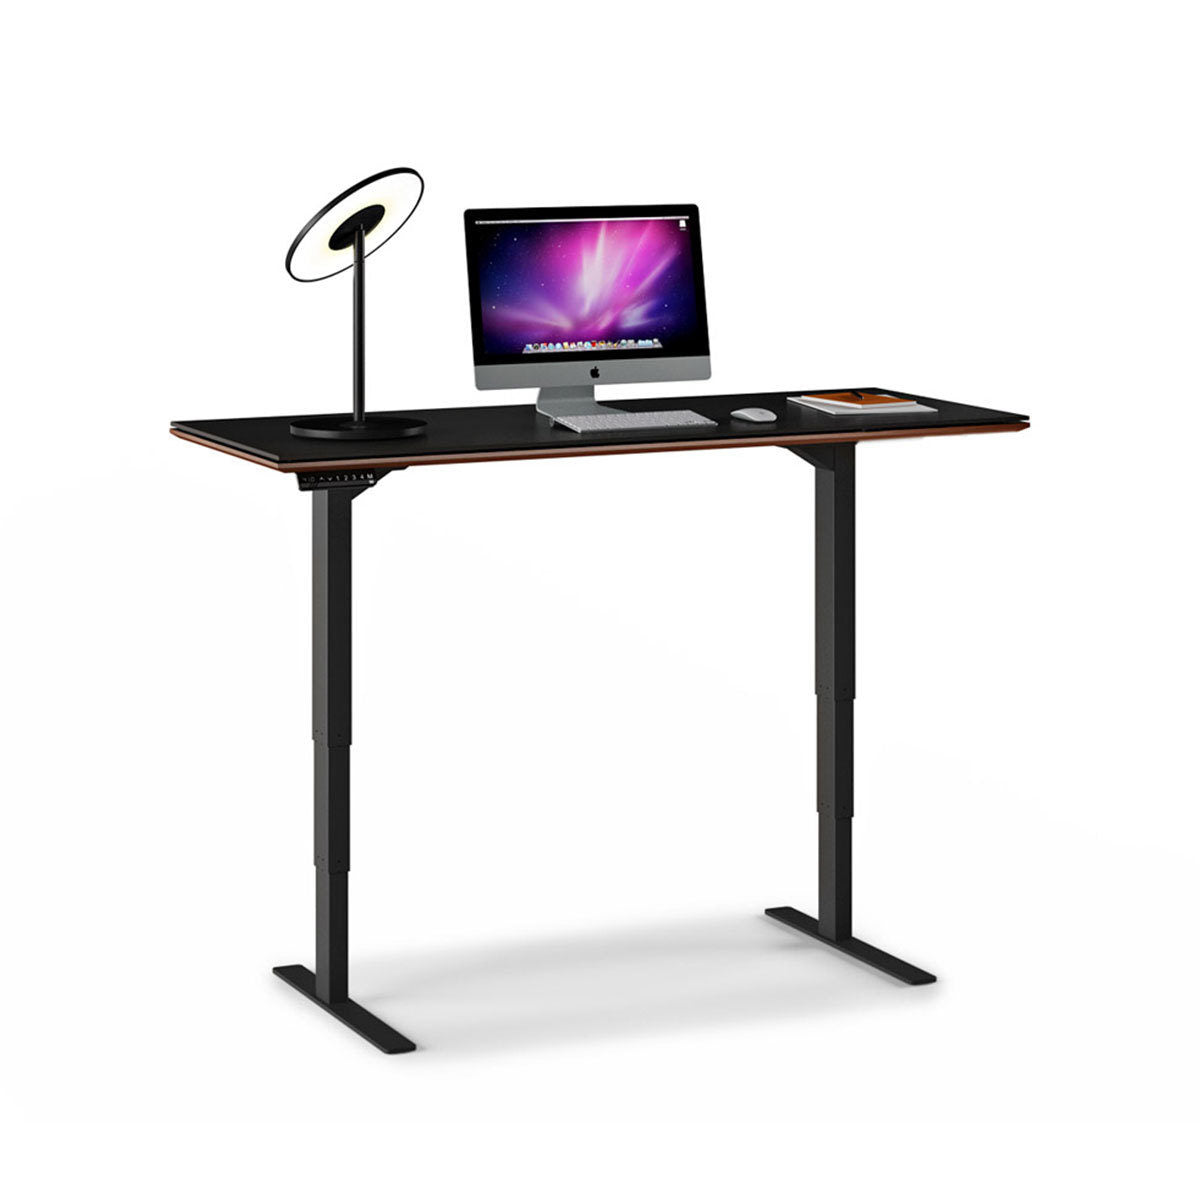 Sequel 6051 Lift Standing Desk